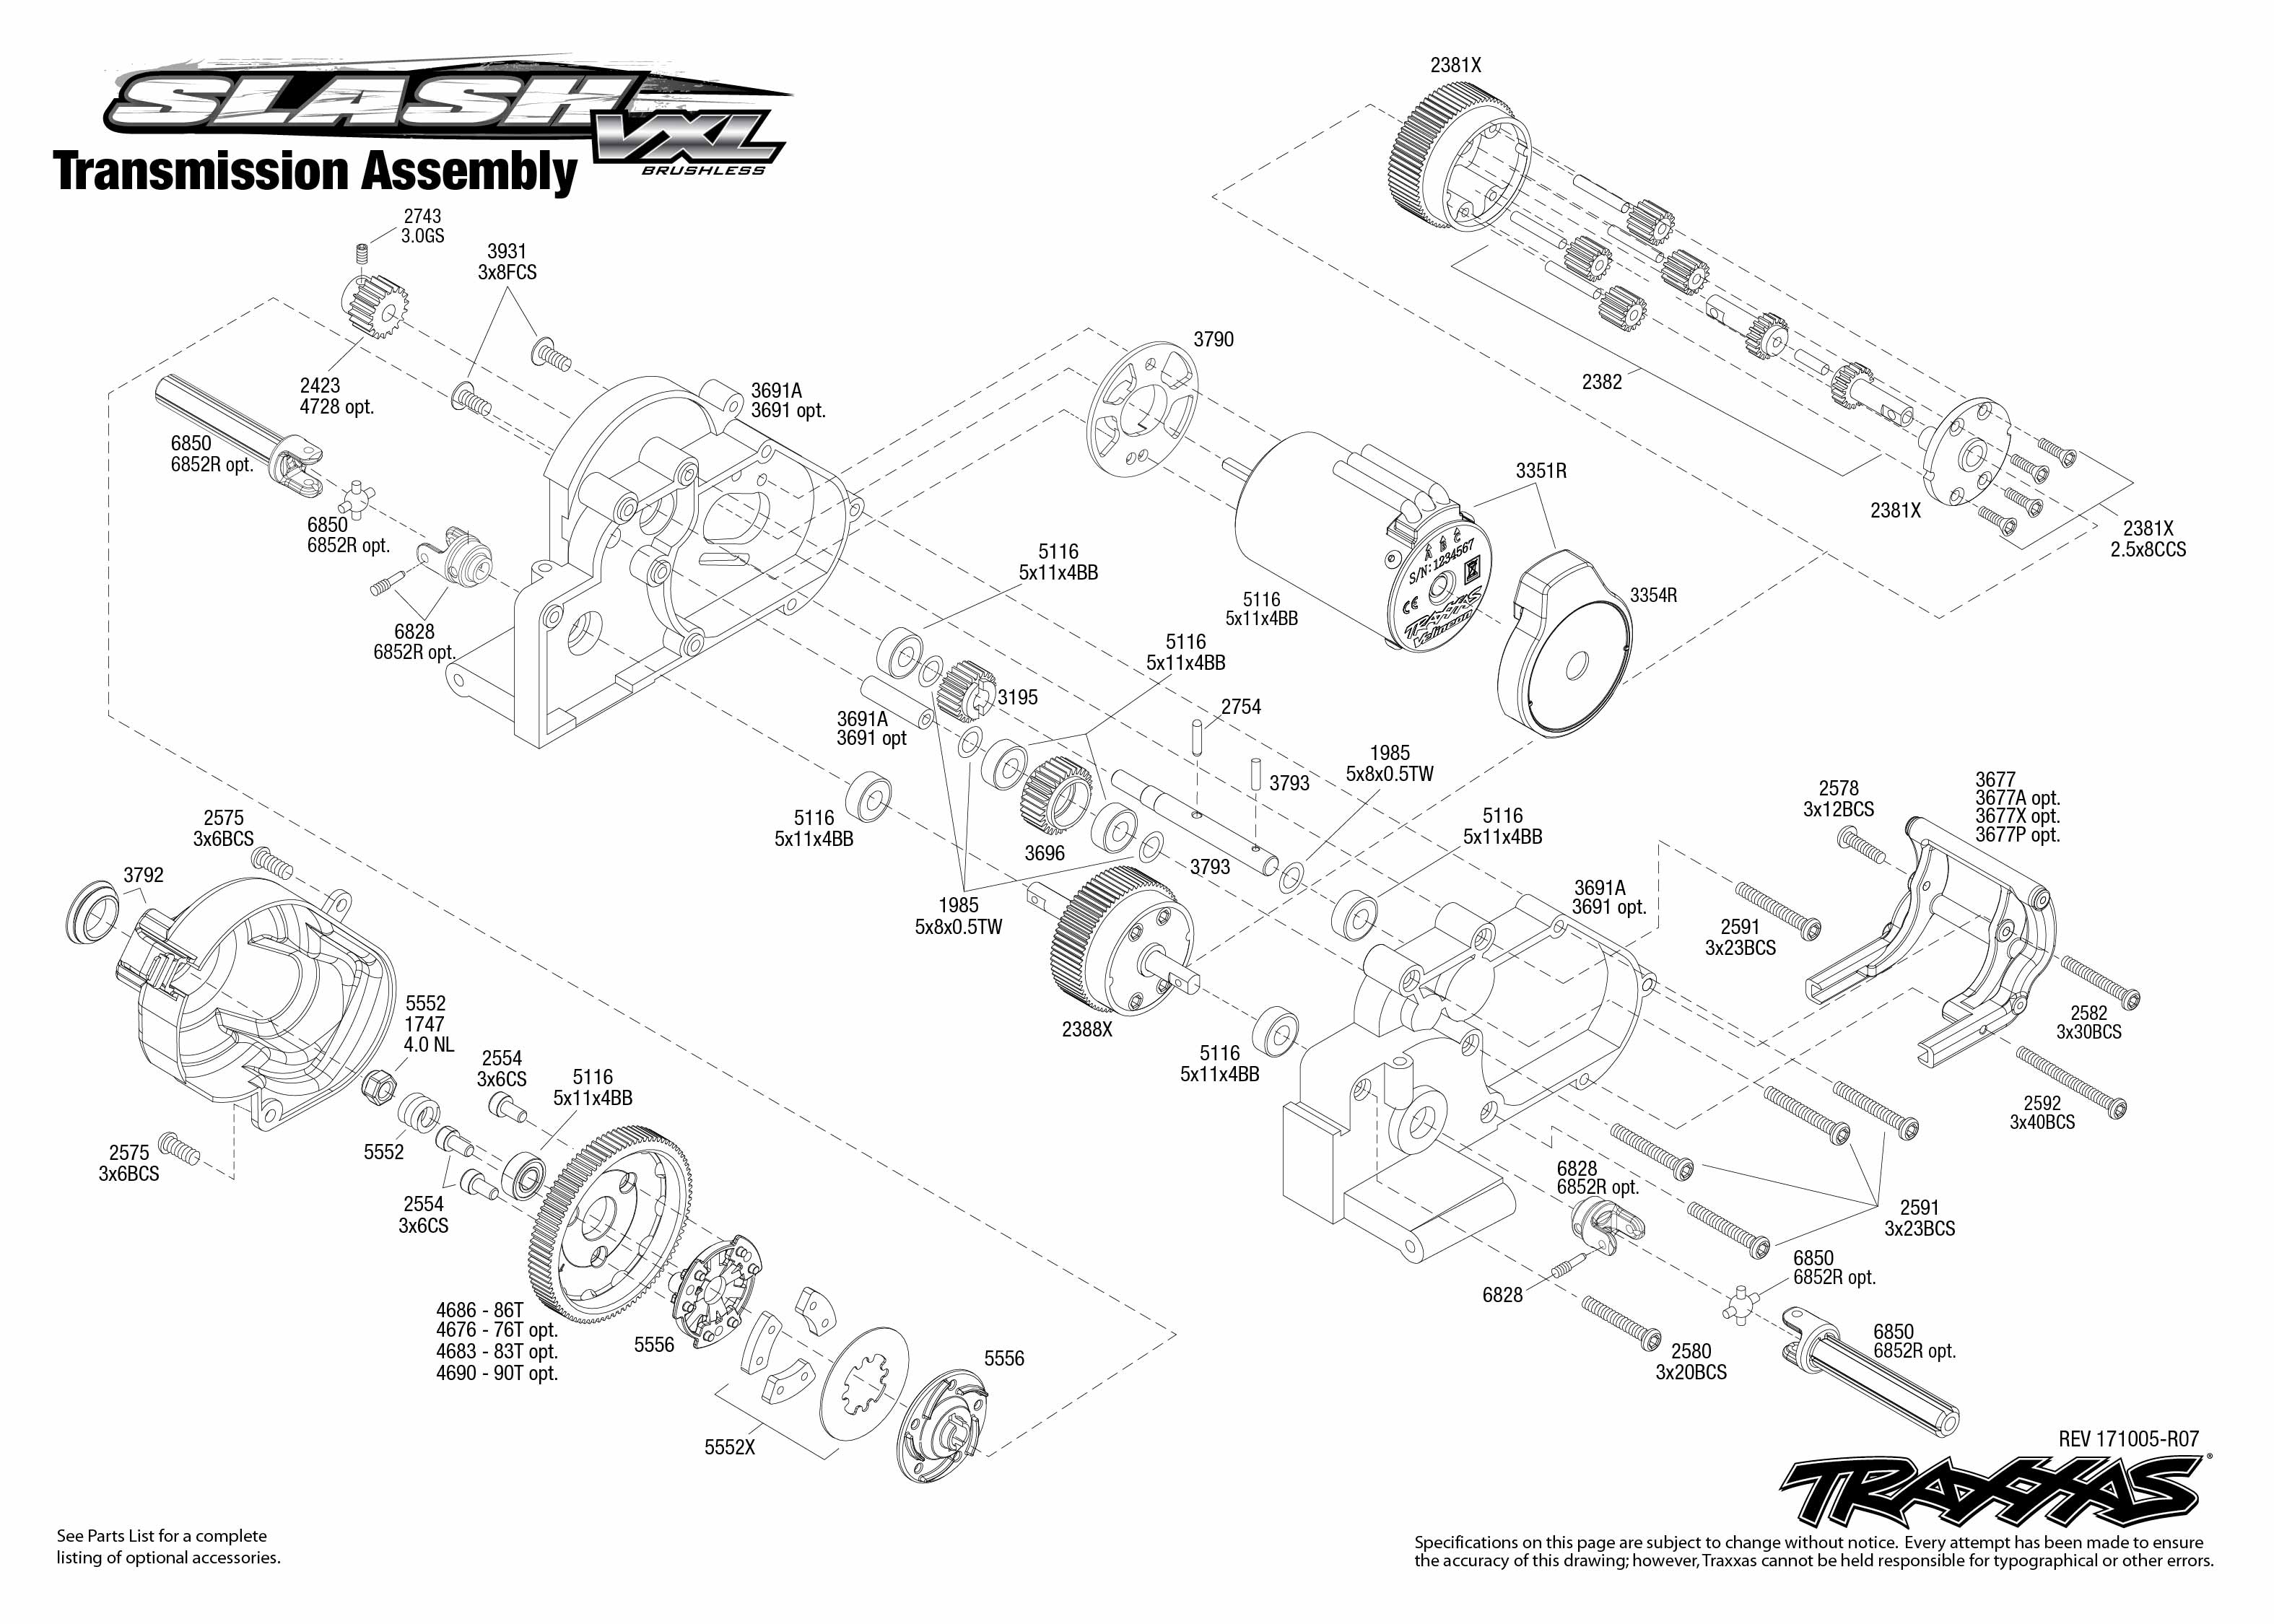 Slash VXL (58076-4) Transmission Assembly Exploded View